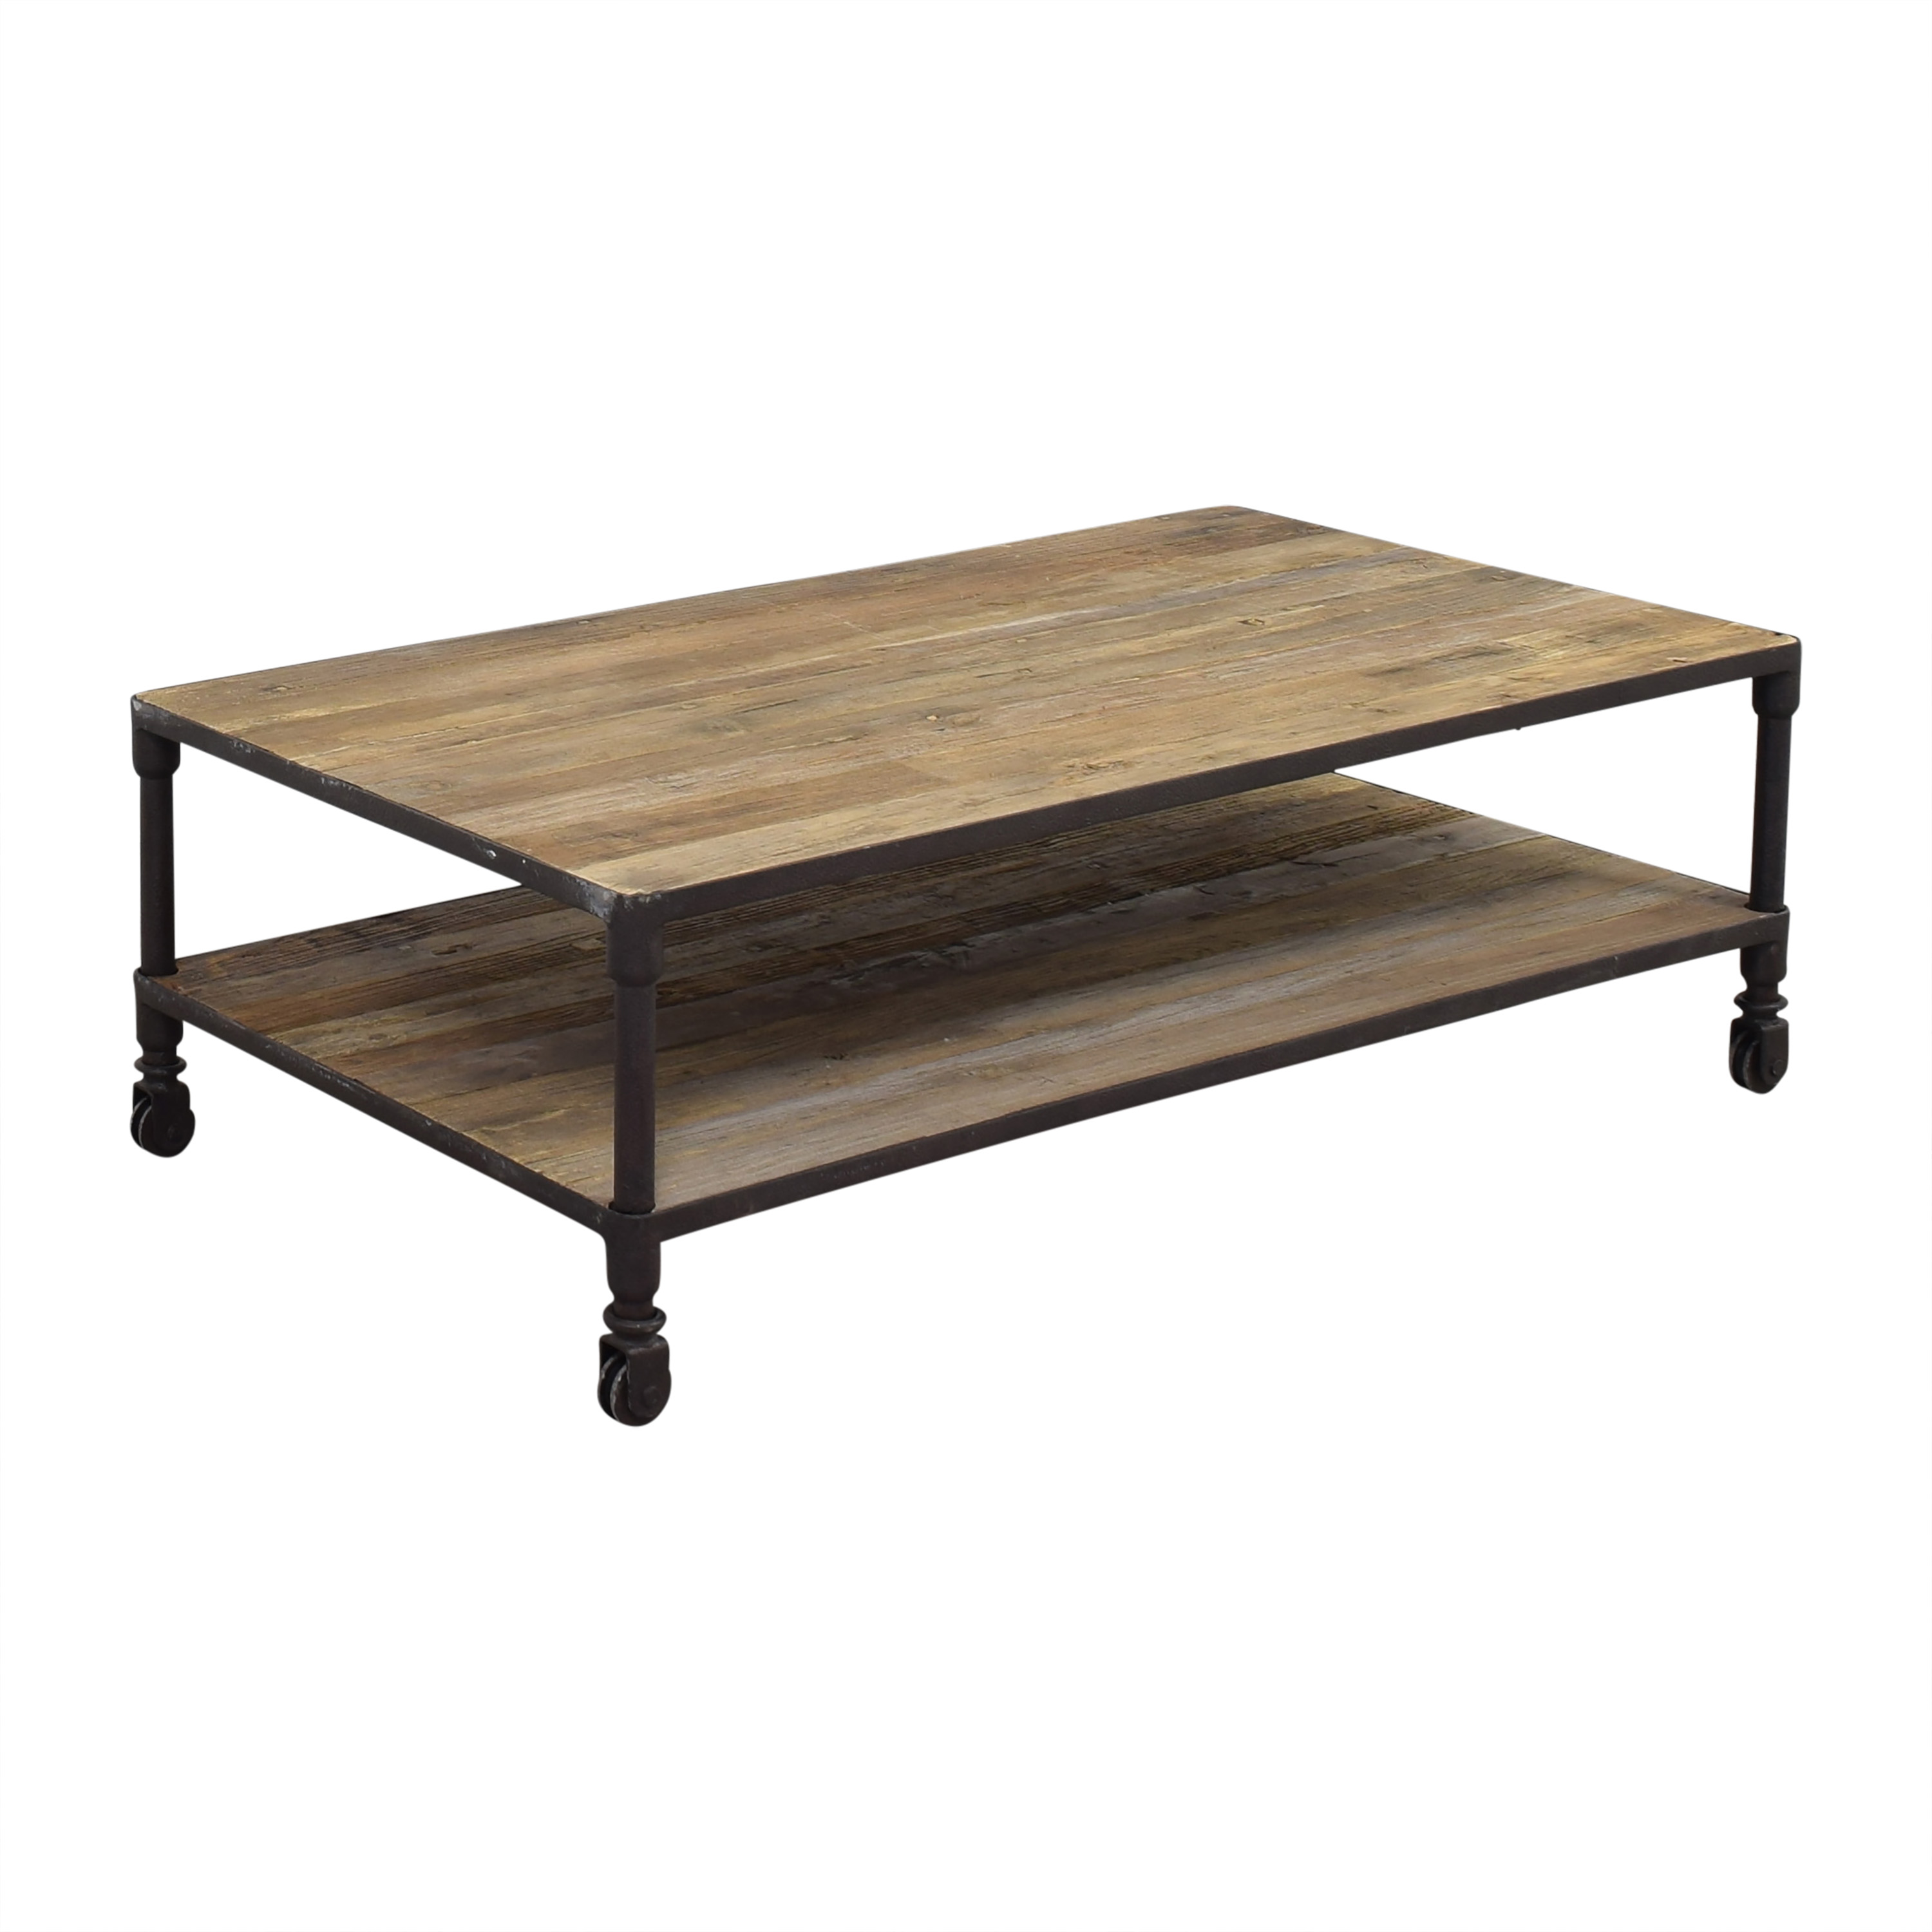 Restoration Hardware Restoration Hardware Dutch Industrial Coffee Table dimensions